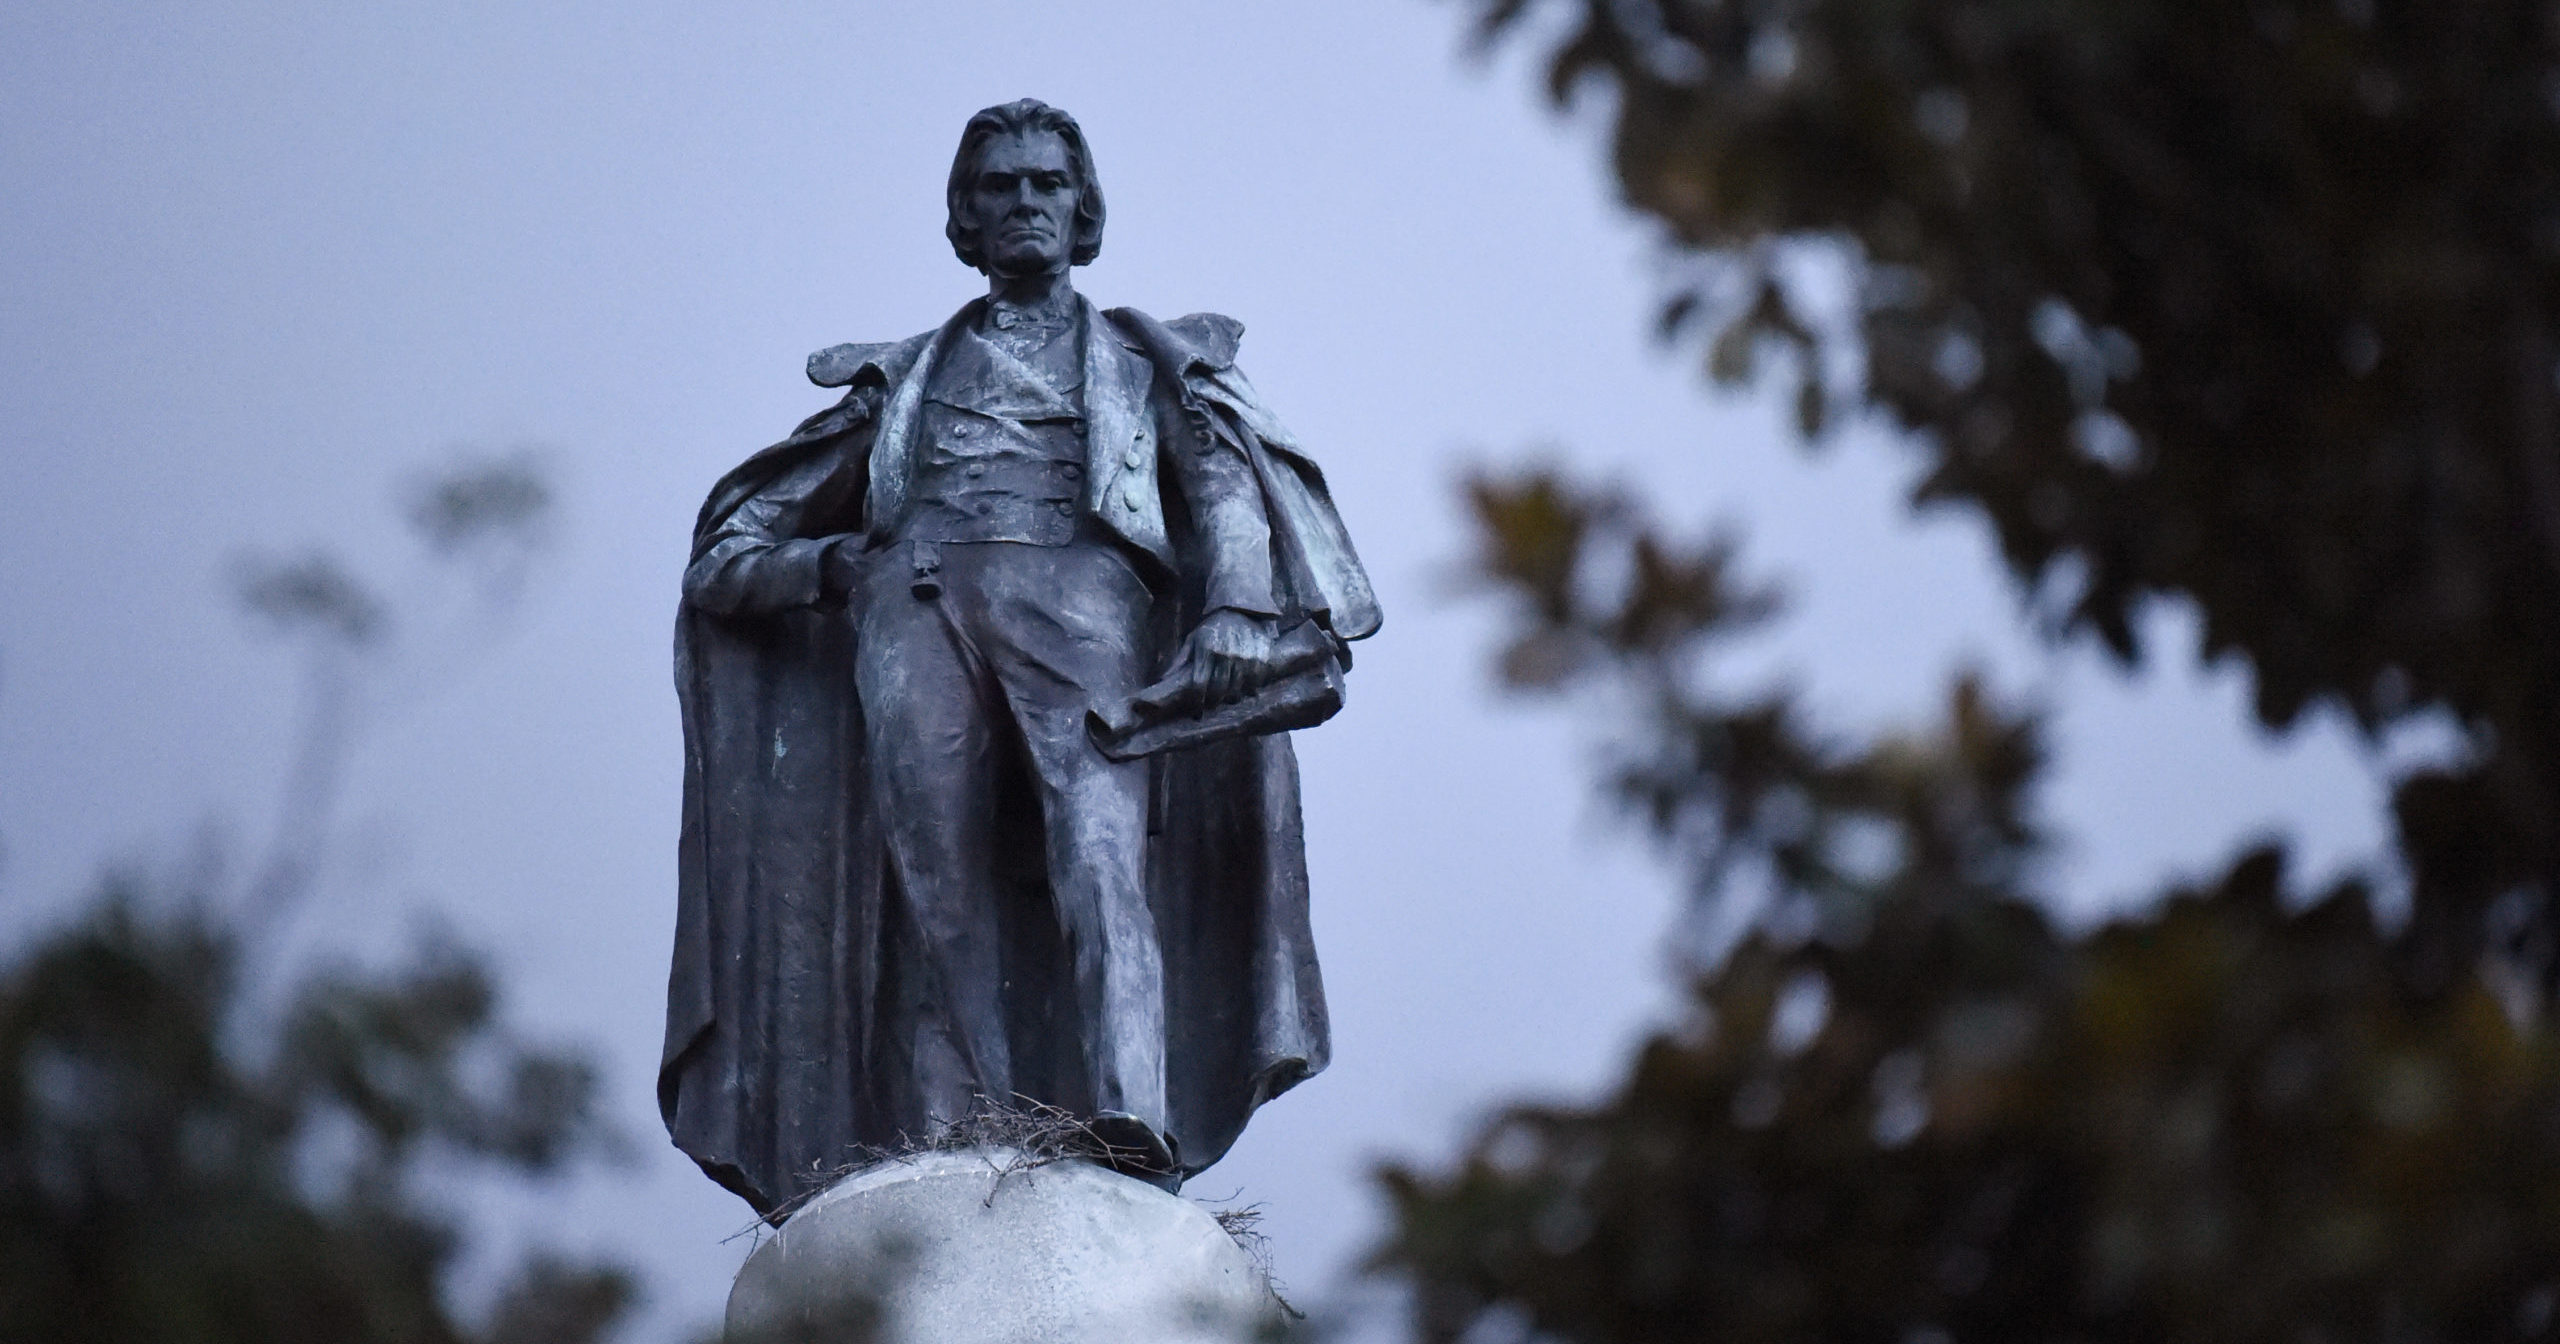 A 100-foot monument to former U.S. vice president and slavery advocate John C. Calhoun towers over a downtown square on June 23, 2020, in Charleston, South Carolina. Officials in Charleston voted unanimously Tuesday to remove the statue.